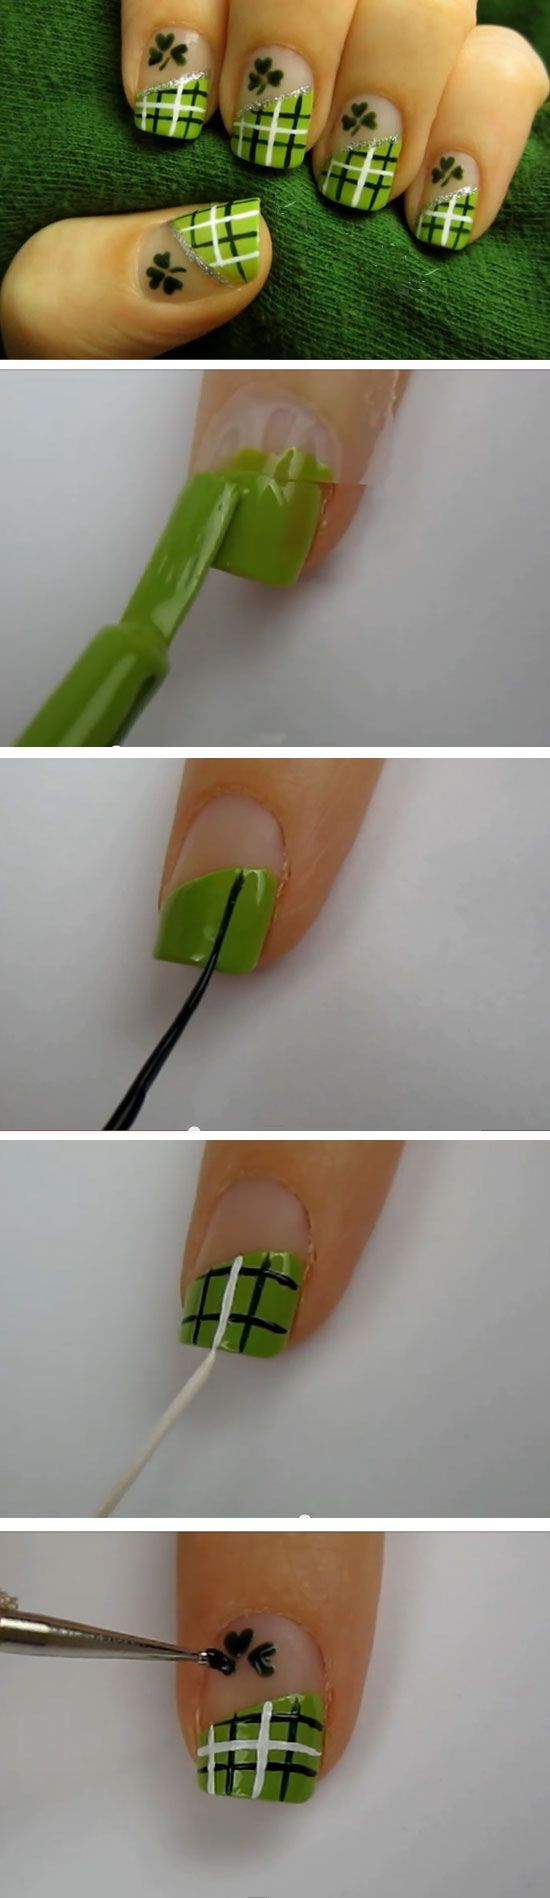 6 Super Cute Nail Designs Tutorials